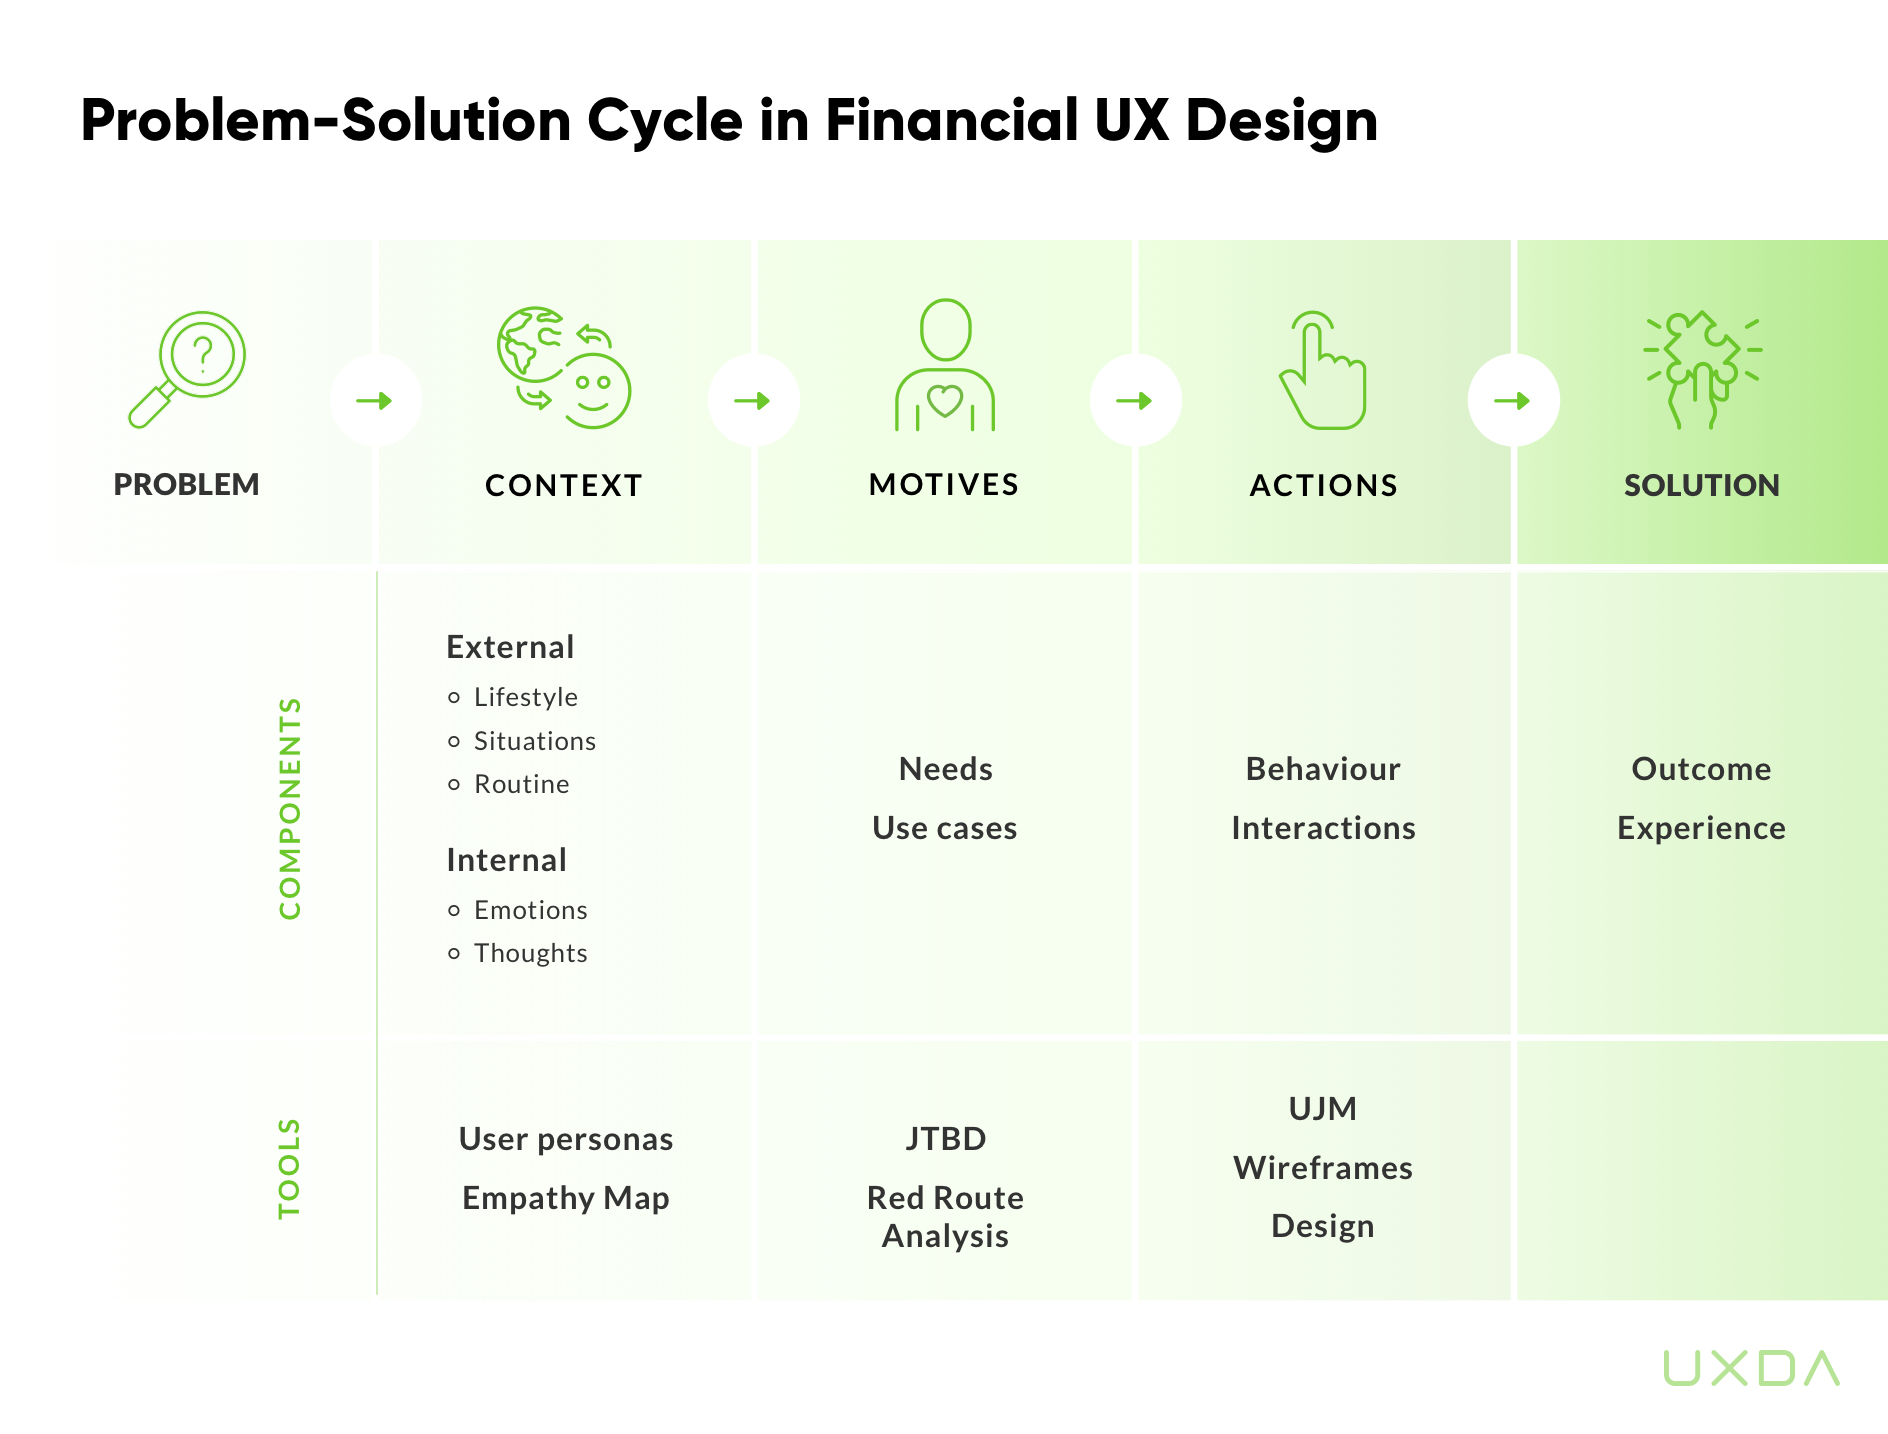 digital-financial-services-ux-problem-solution-cycle.jpg